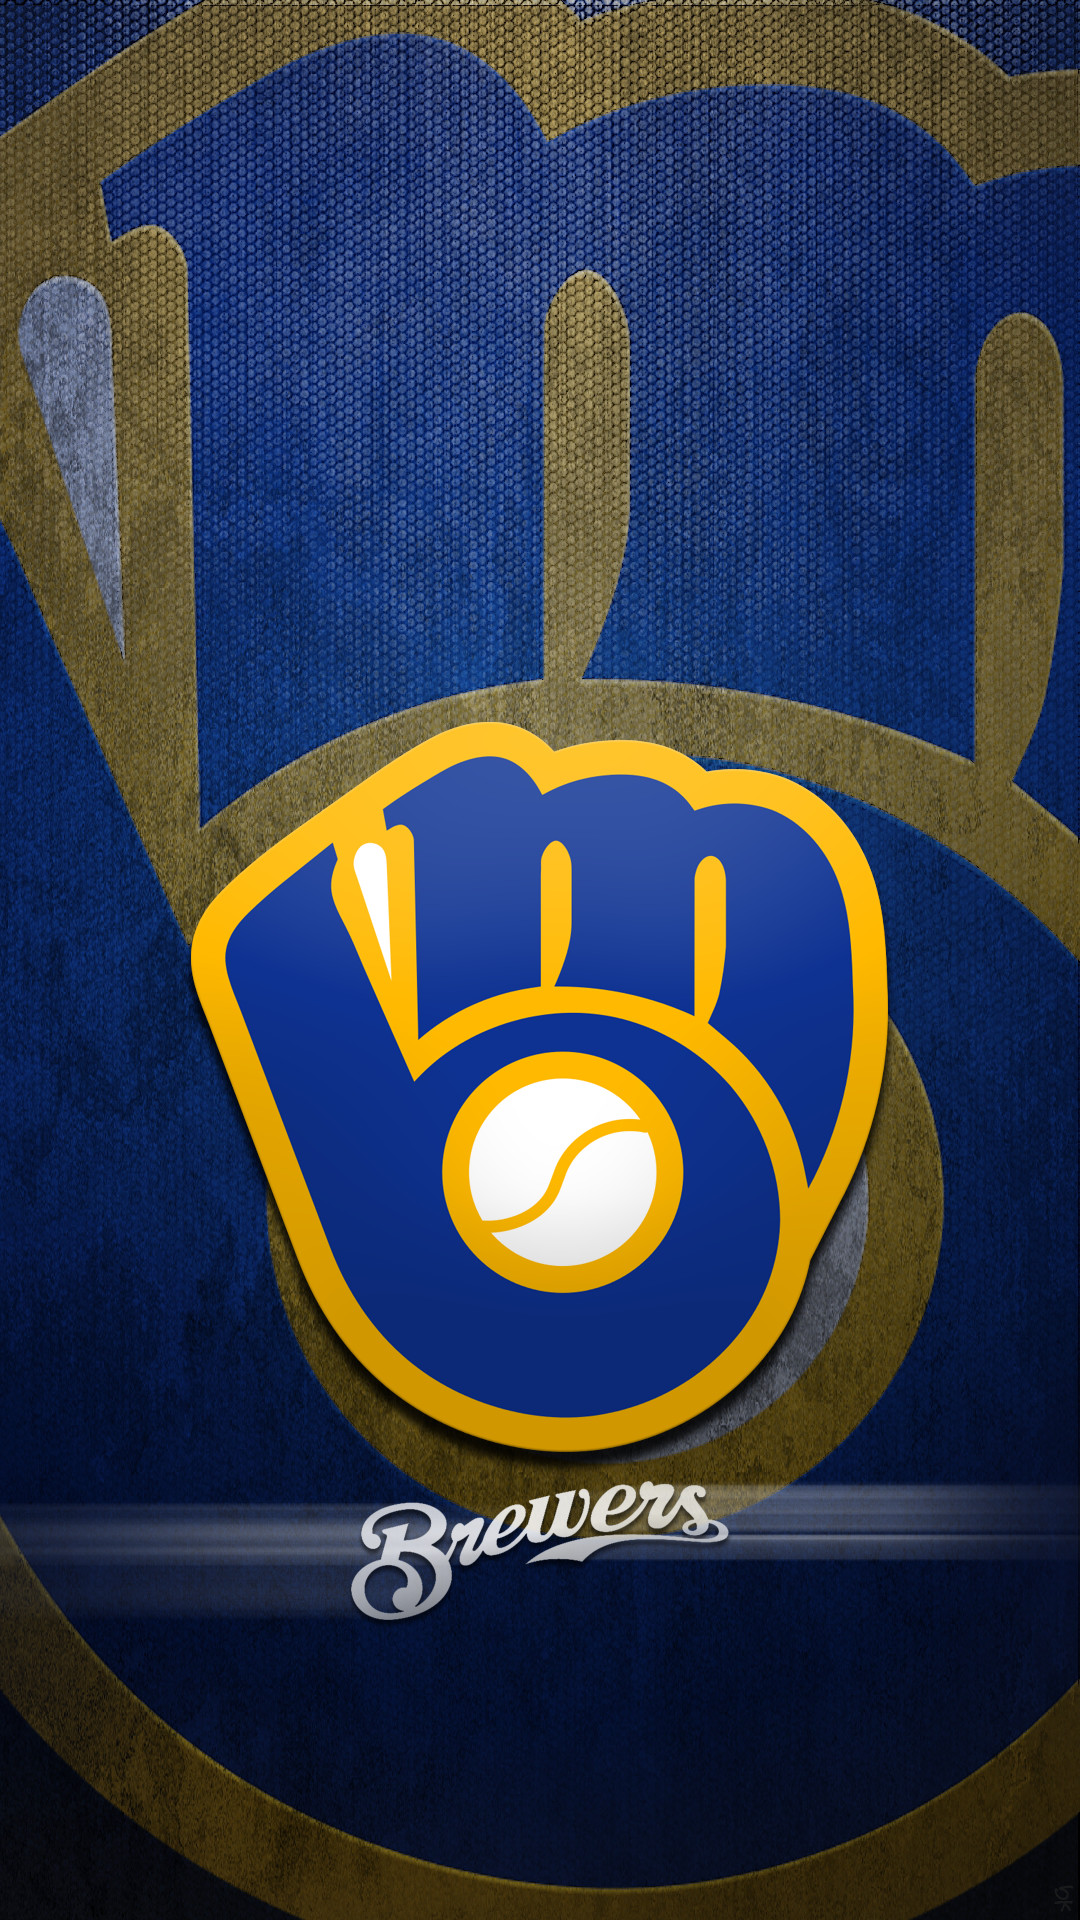 … brewers wallpaper for android wallpaper for mobile …